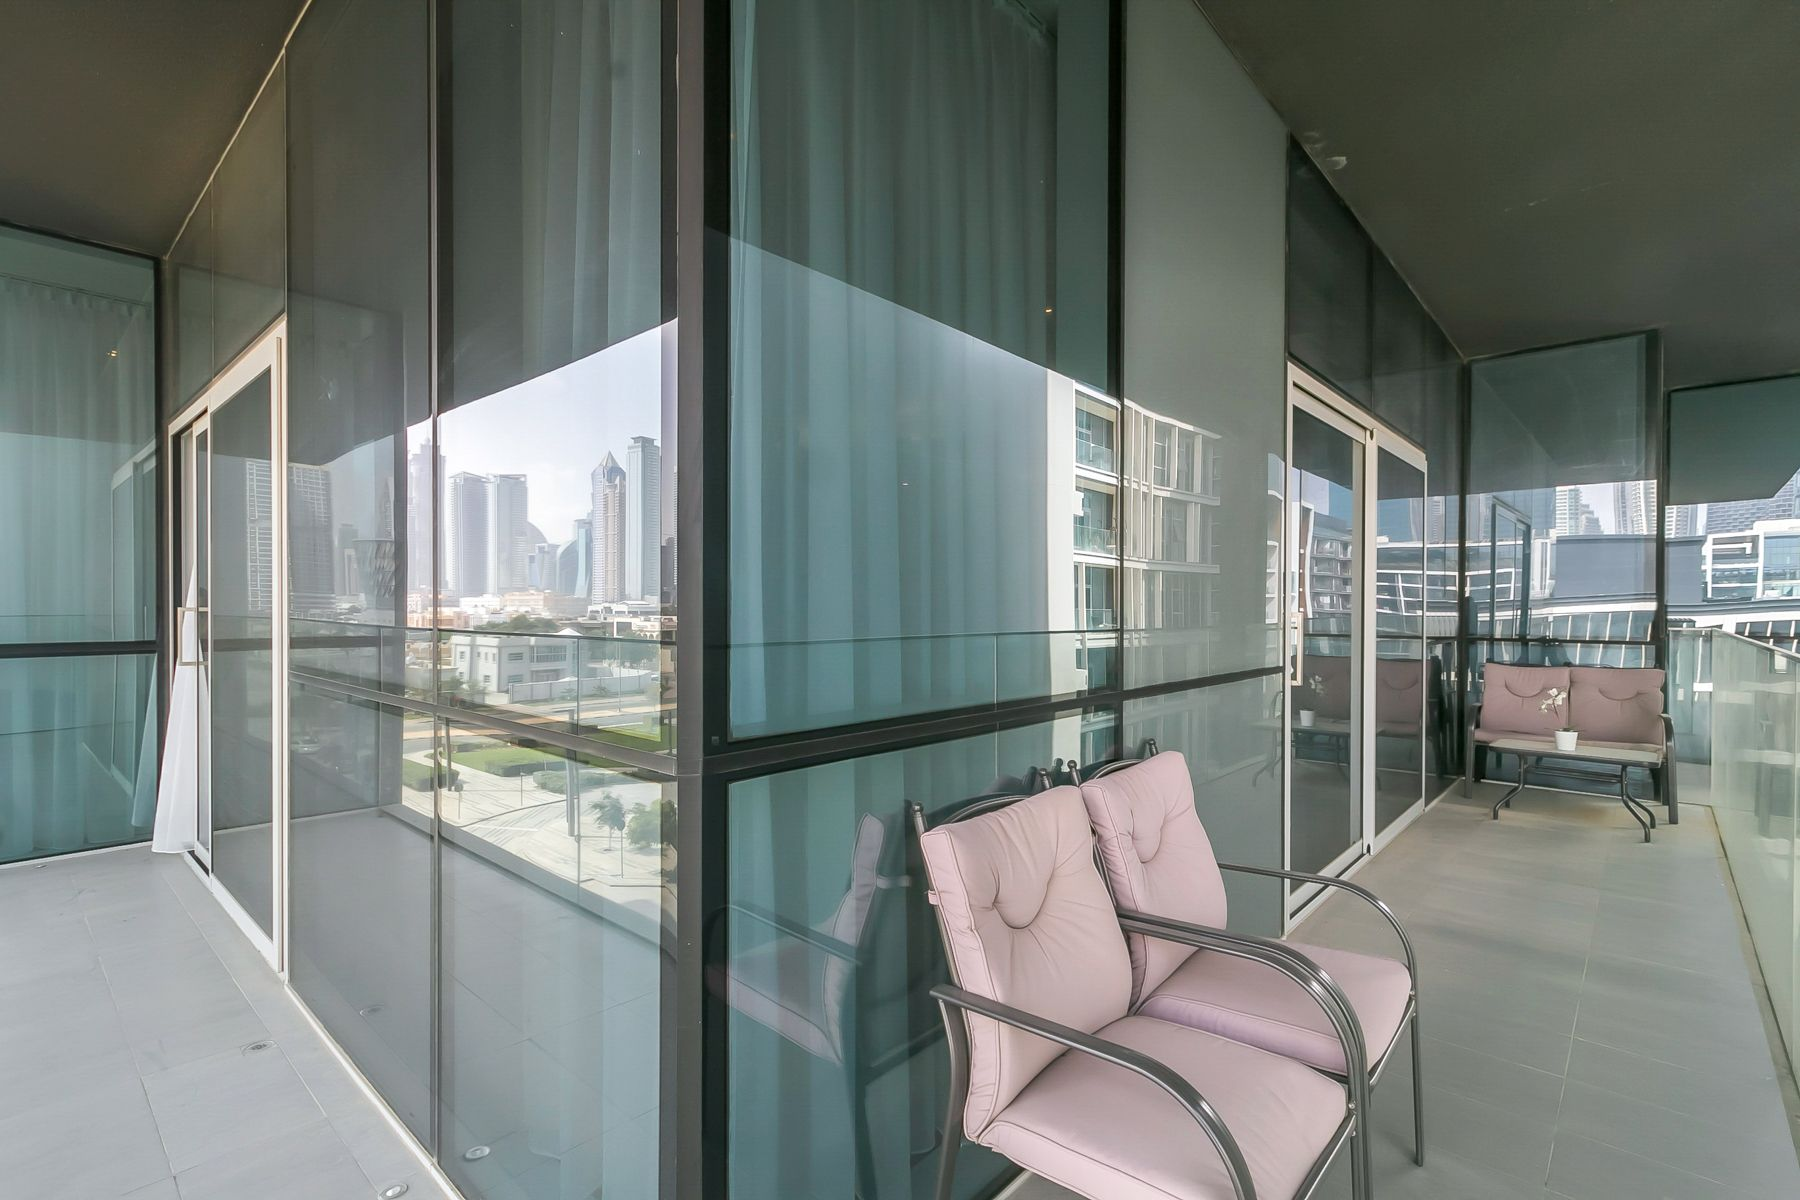 One-Time Offer For 2 Months Booking! Brand New, Premium 3BR in City Walk Bldg 16